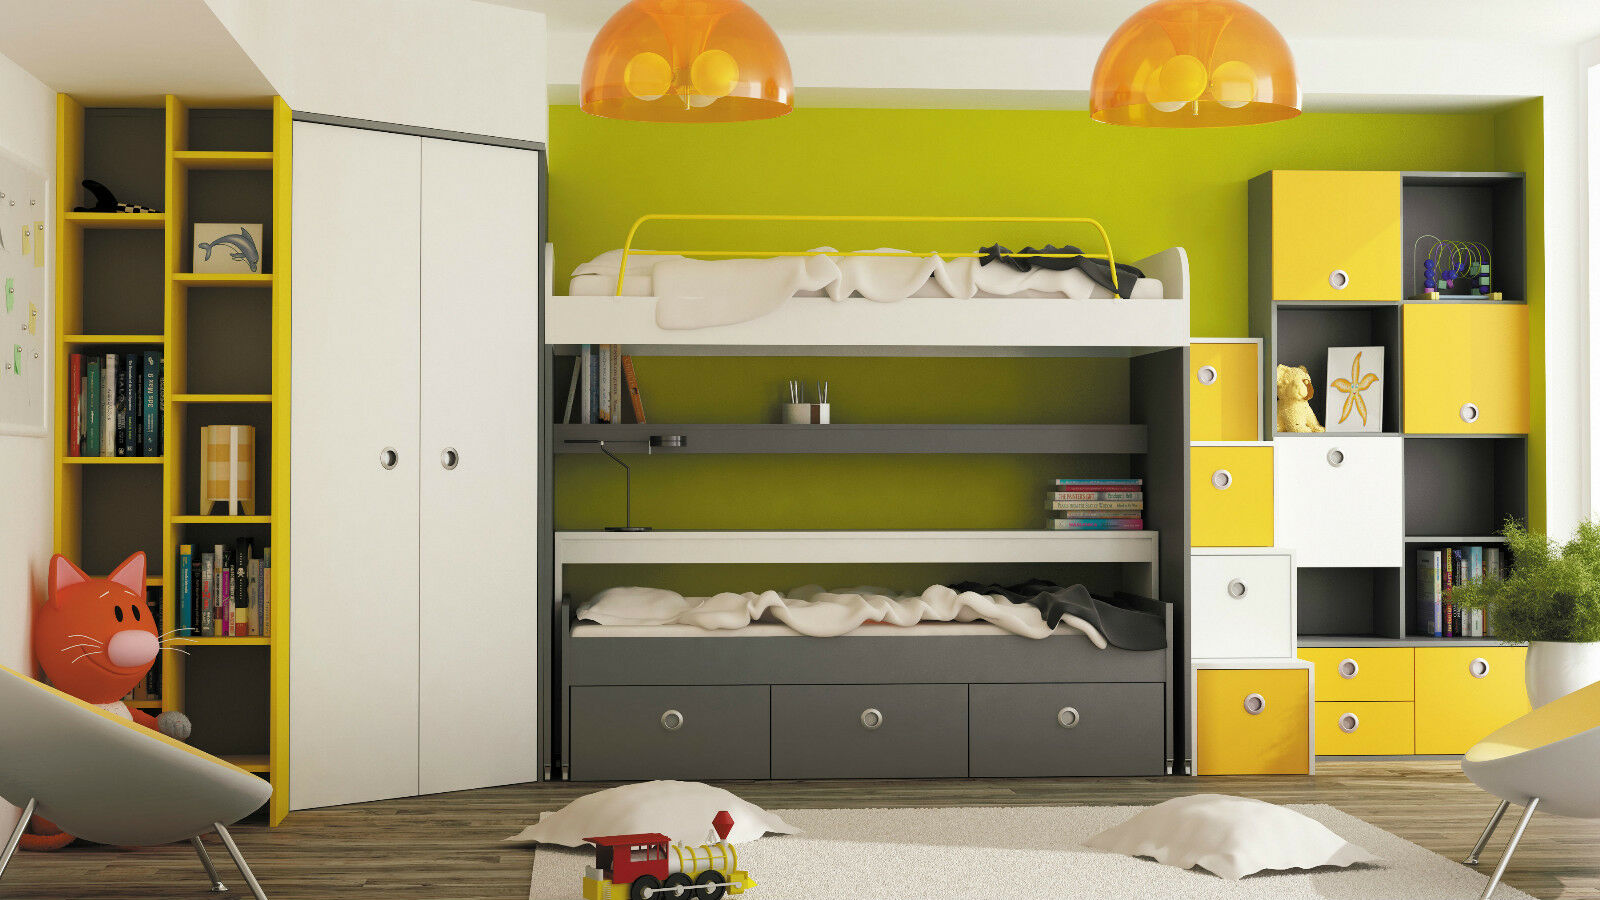 jugendzimmer city mit bett regal kleiderschrank kinderzimmer hochbett eur picclick de. Black Bedroom Furniture Sets. Home Design Ideas